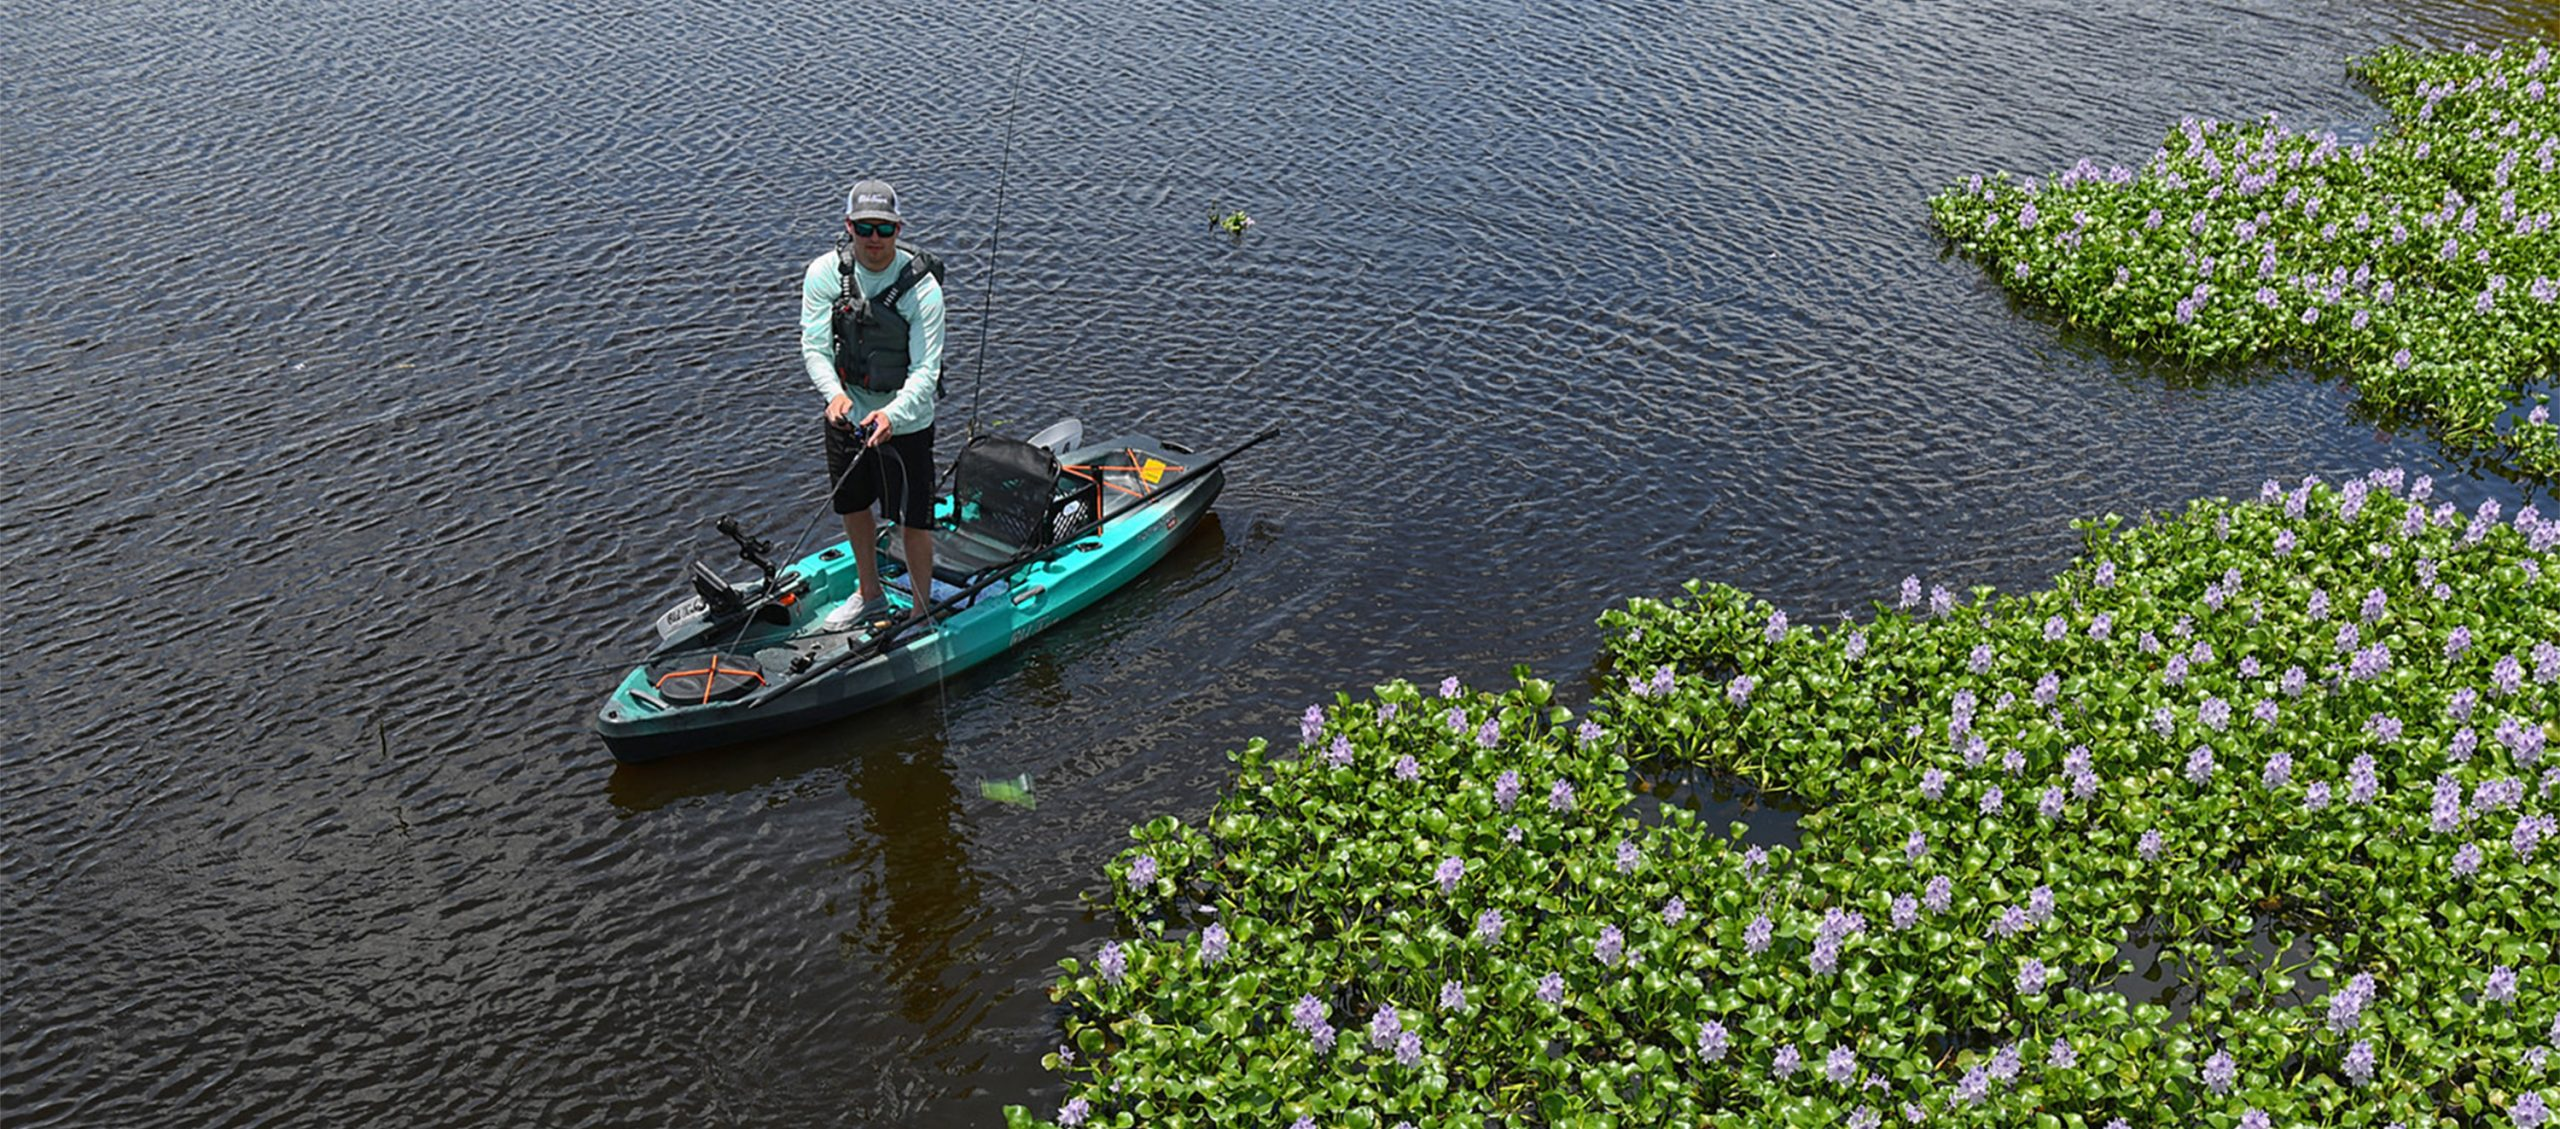 Man standing up on sit-on-top fishing kayak with a fishing rod